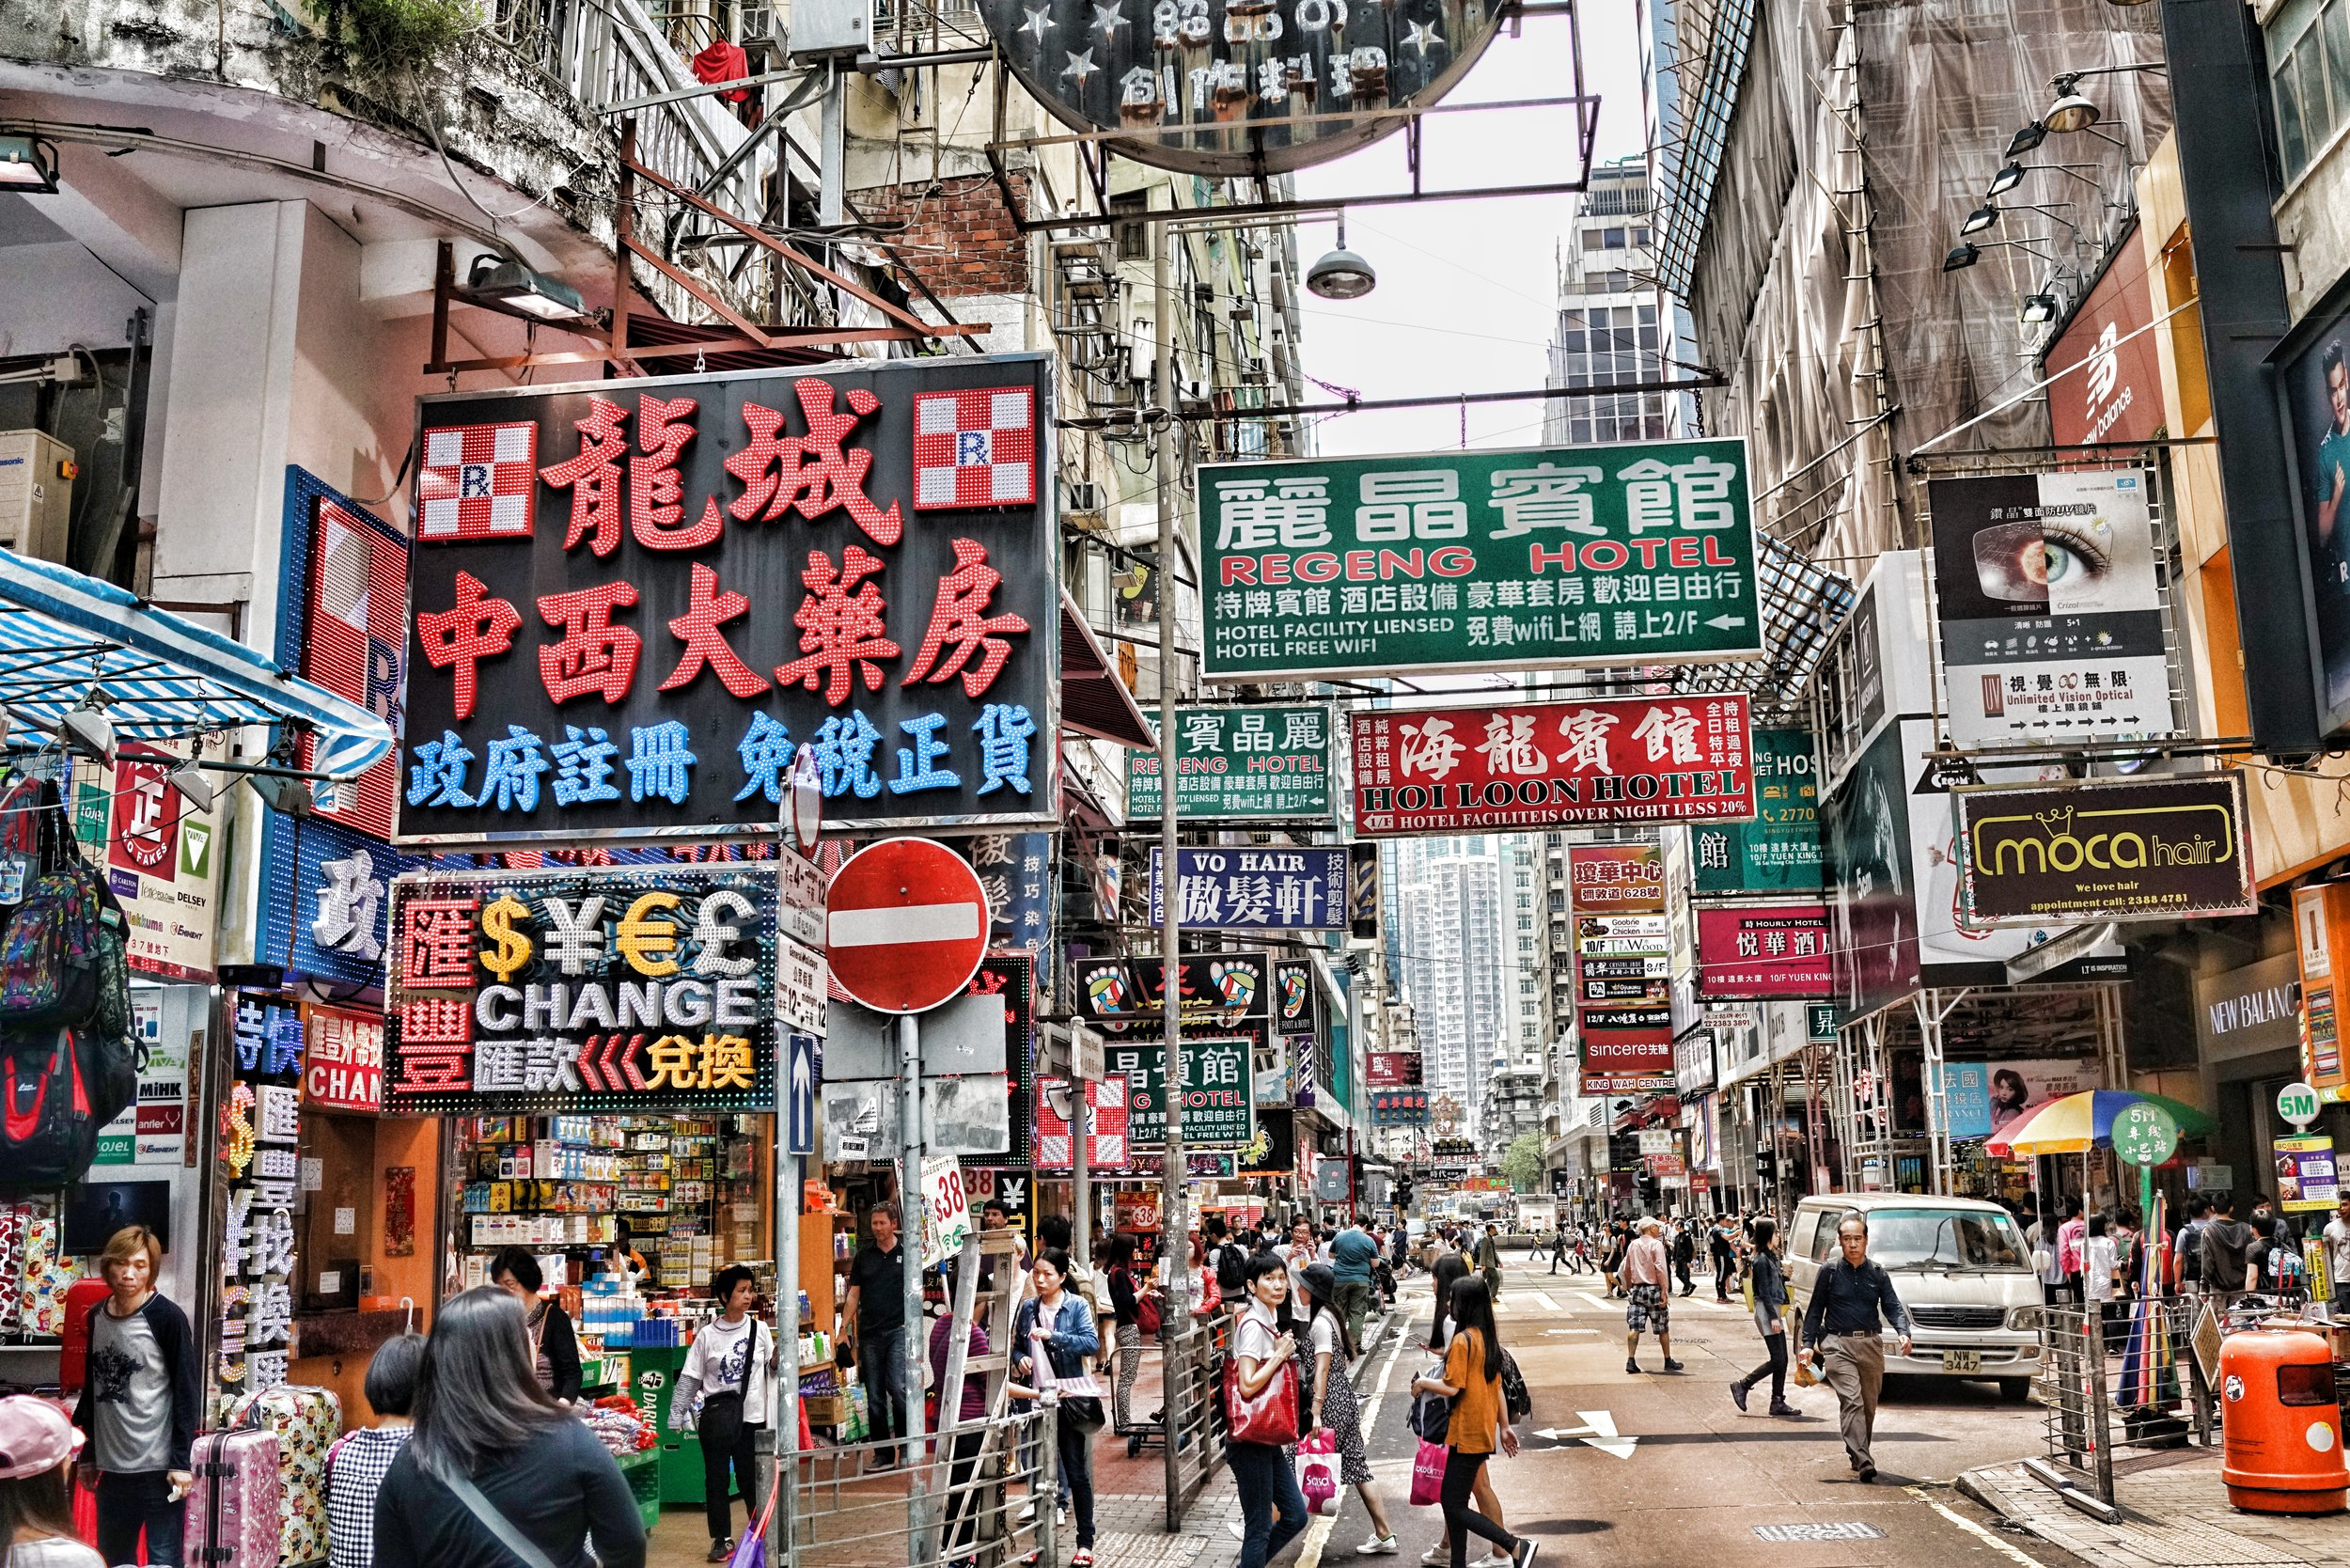 I love Kowloon street scenes like this.. it is a very busy scene, so much going on!